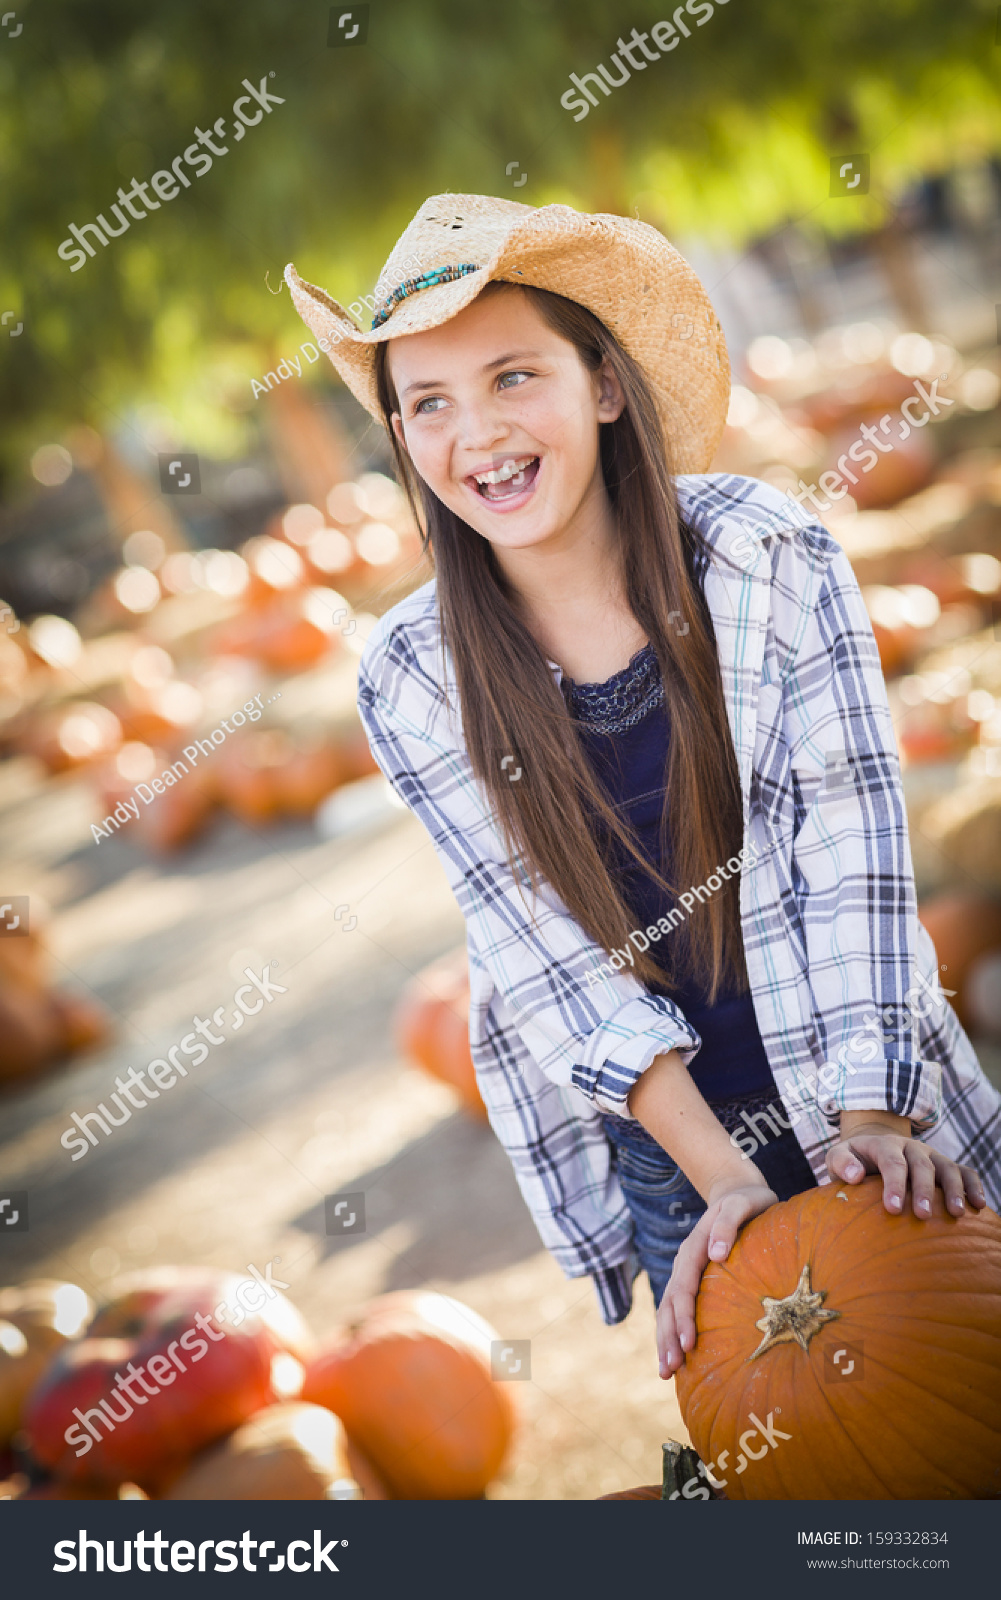 c794bd01f82 Preteen Girl Wearing Cowboy Hat Playing with a Wheelbarrow at the Pumpkin  Patch in a Rustic